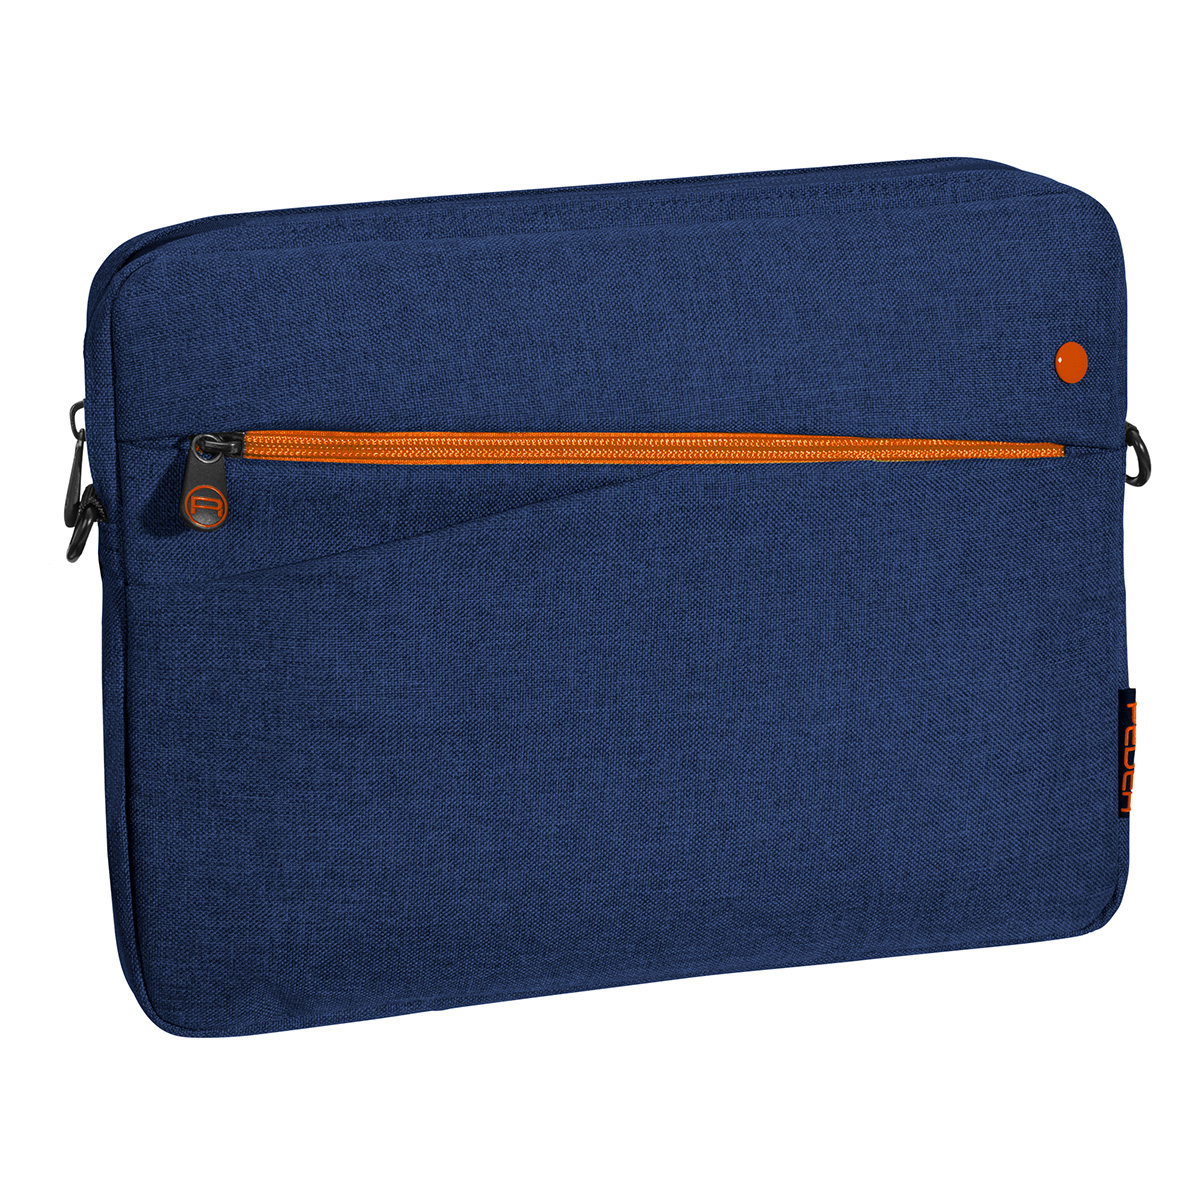 "PEDEA Tablet-Tasche 12,9"" (32,8cm) blau Fashion für iPad Pro / Surface Pro 4 / Galaxy Tab Pro S"